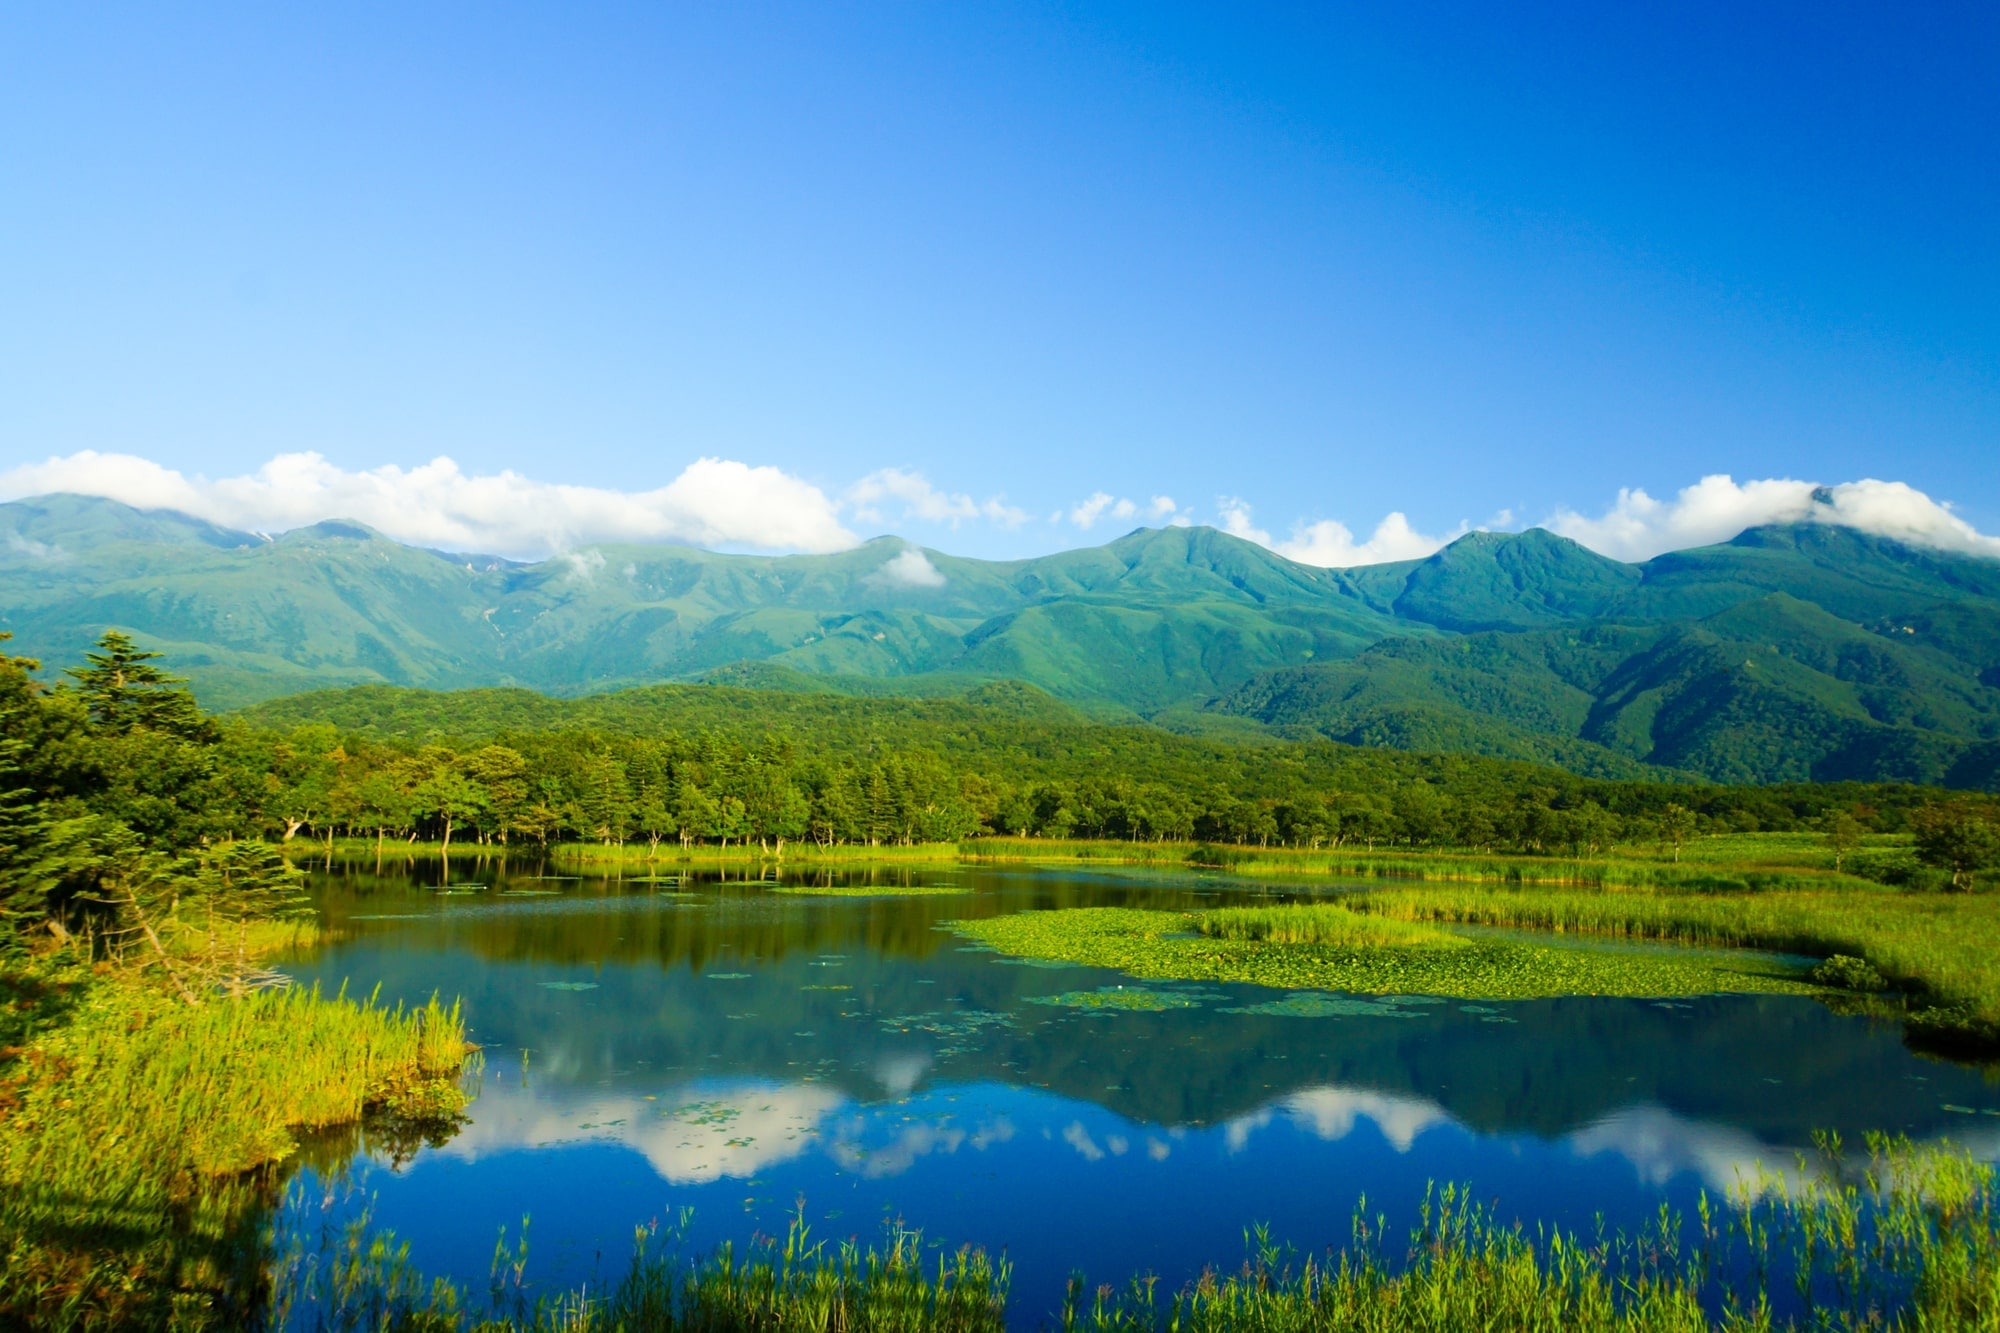 10 Best National Parks To Visit in Japan - Shiretoko National Park